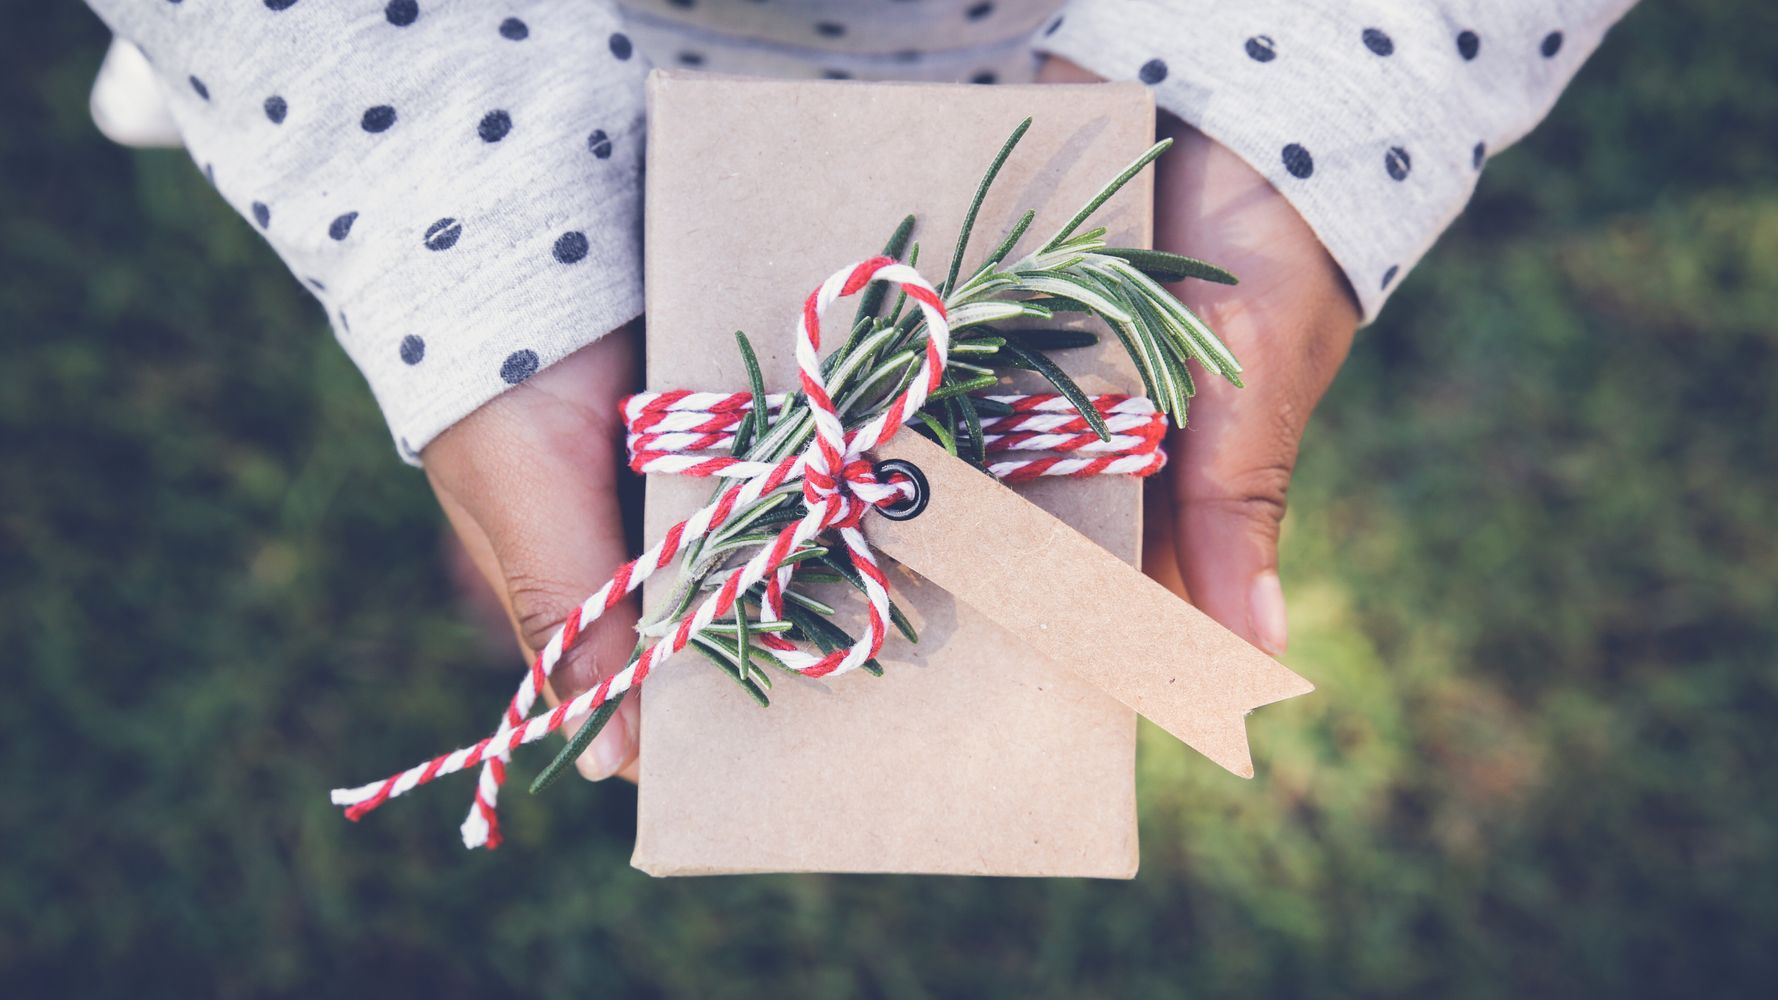 Thoughtful Holiday Gifts For Transgender And Gender-Diverse Kids